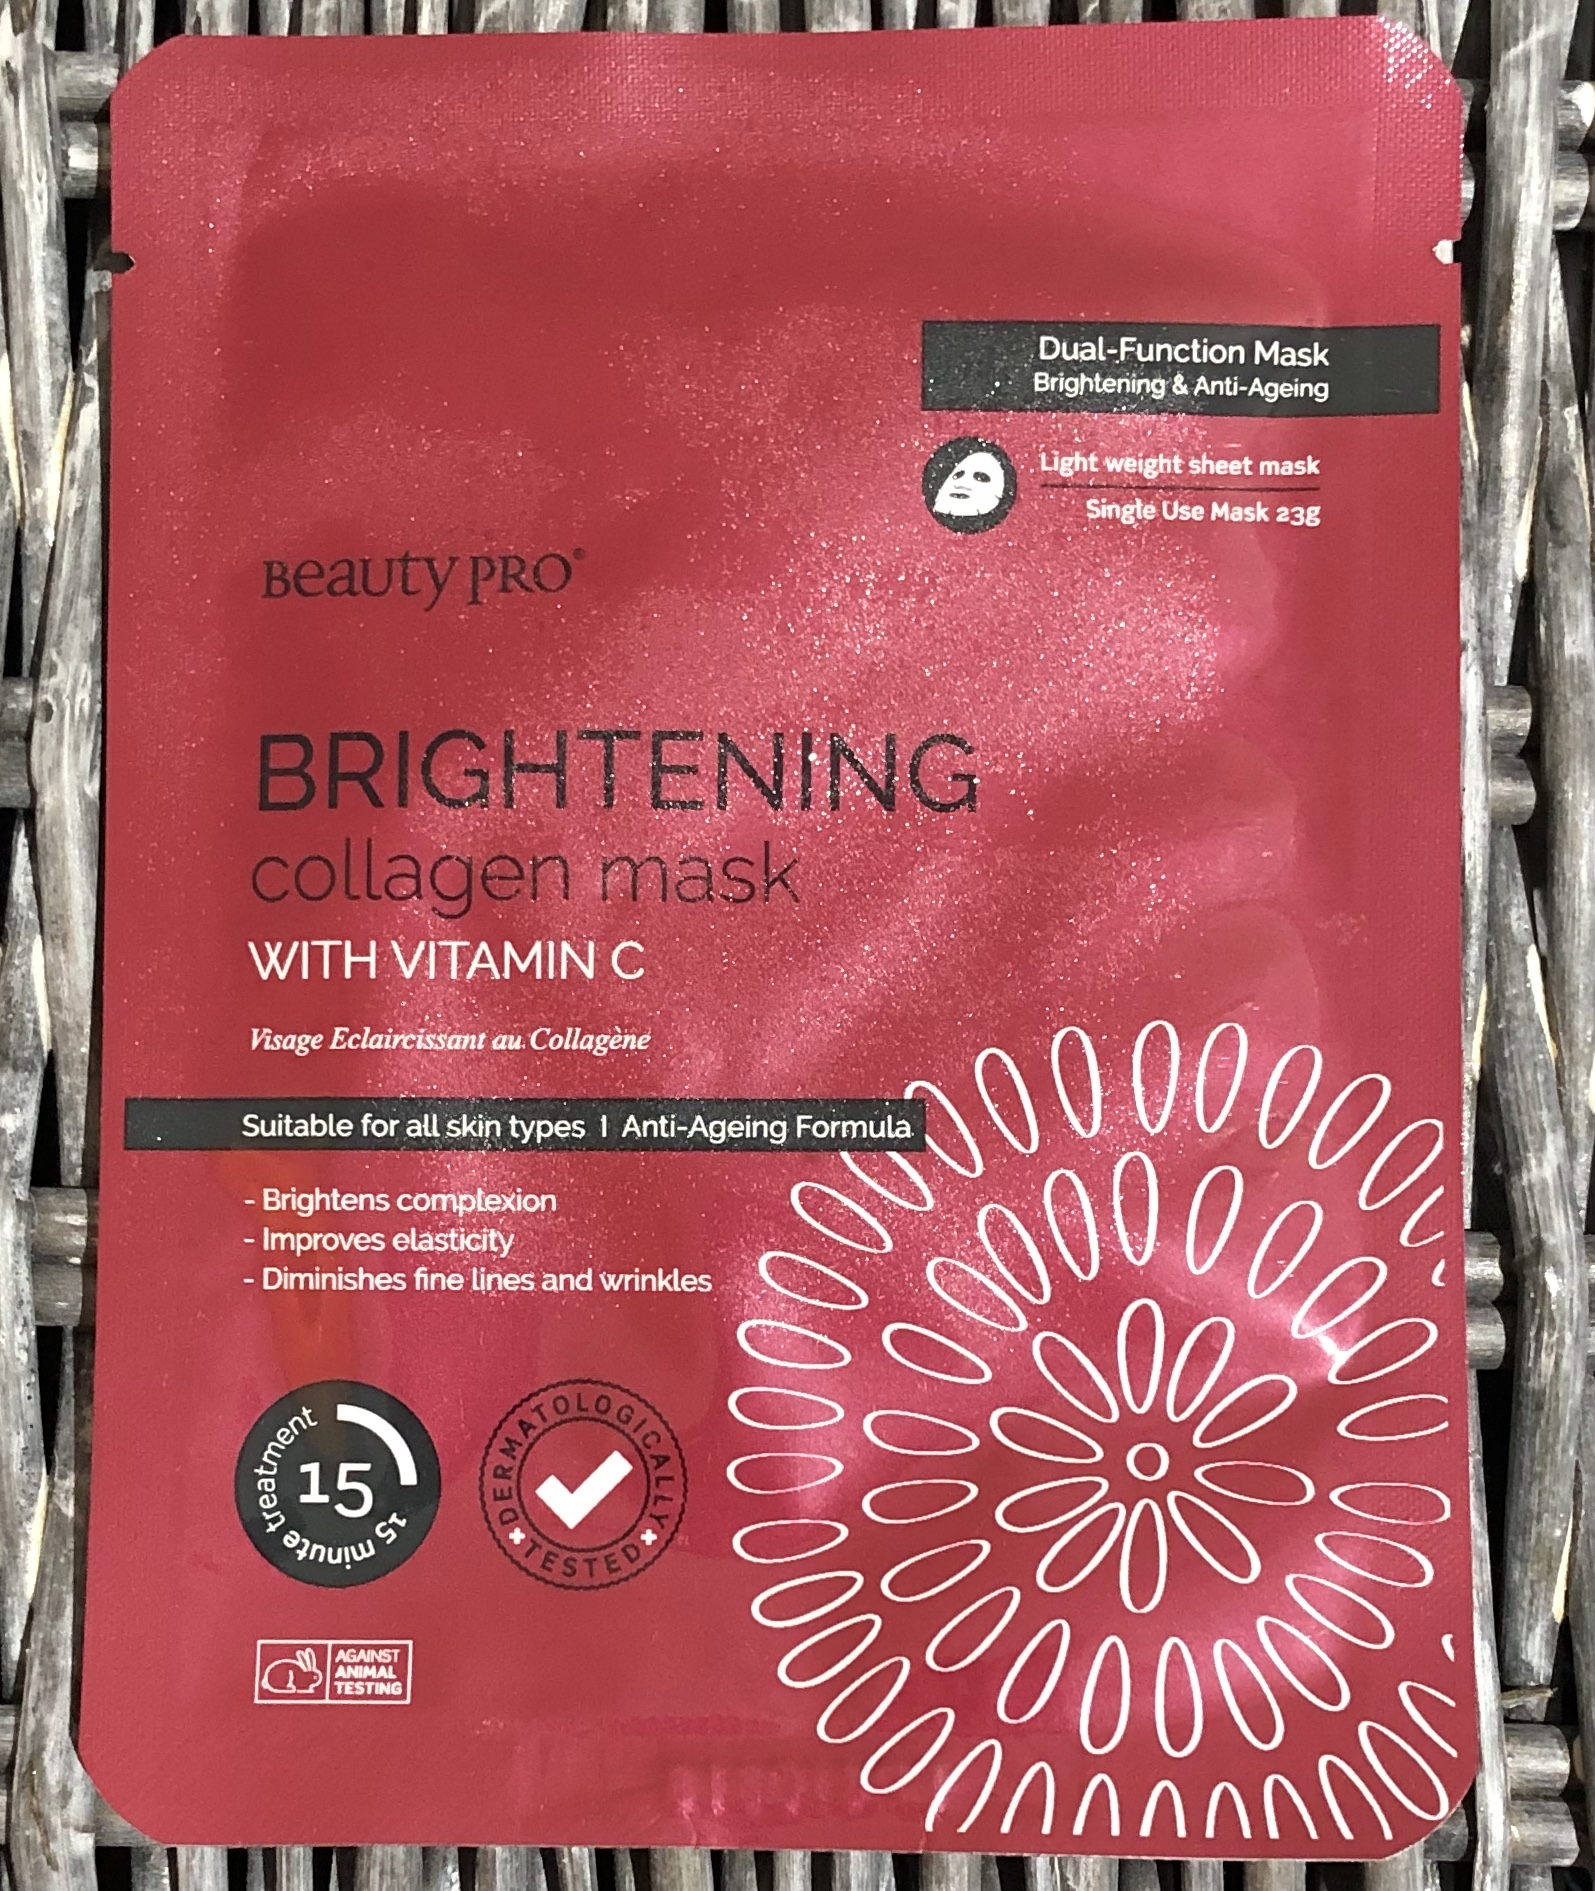 Beauty Pro Brightening Collagen Mask Review graphic